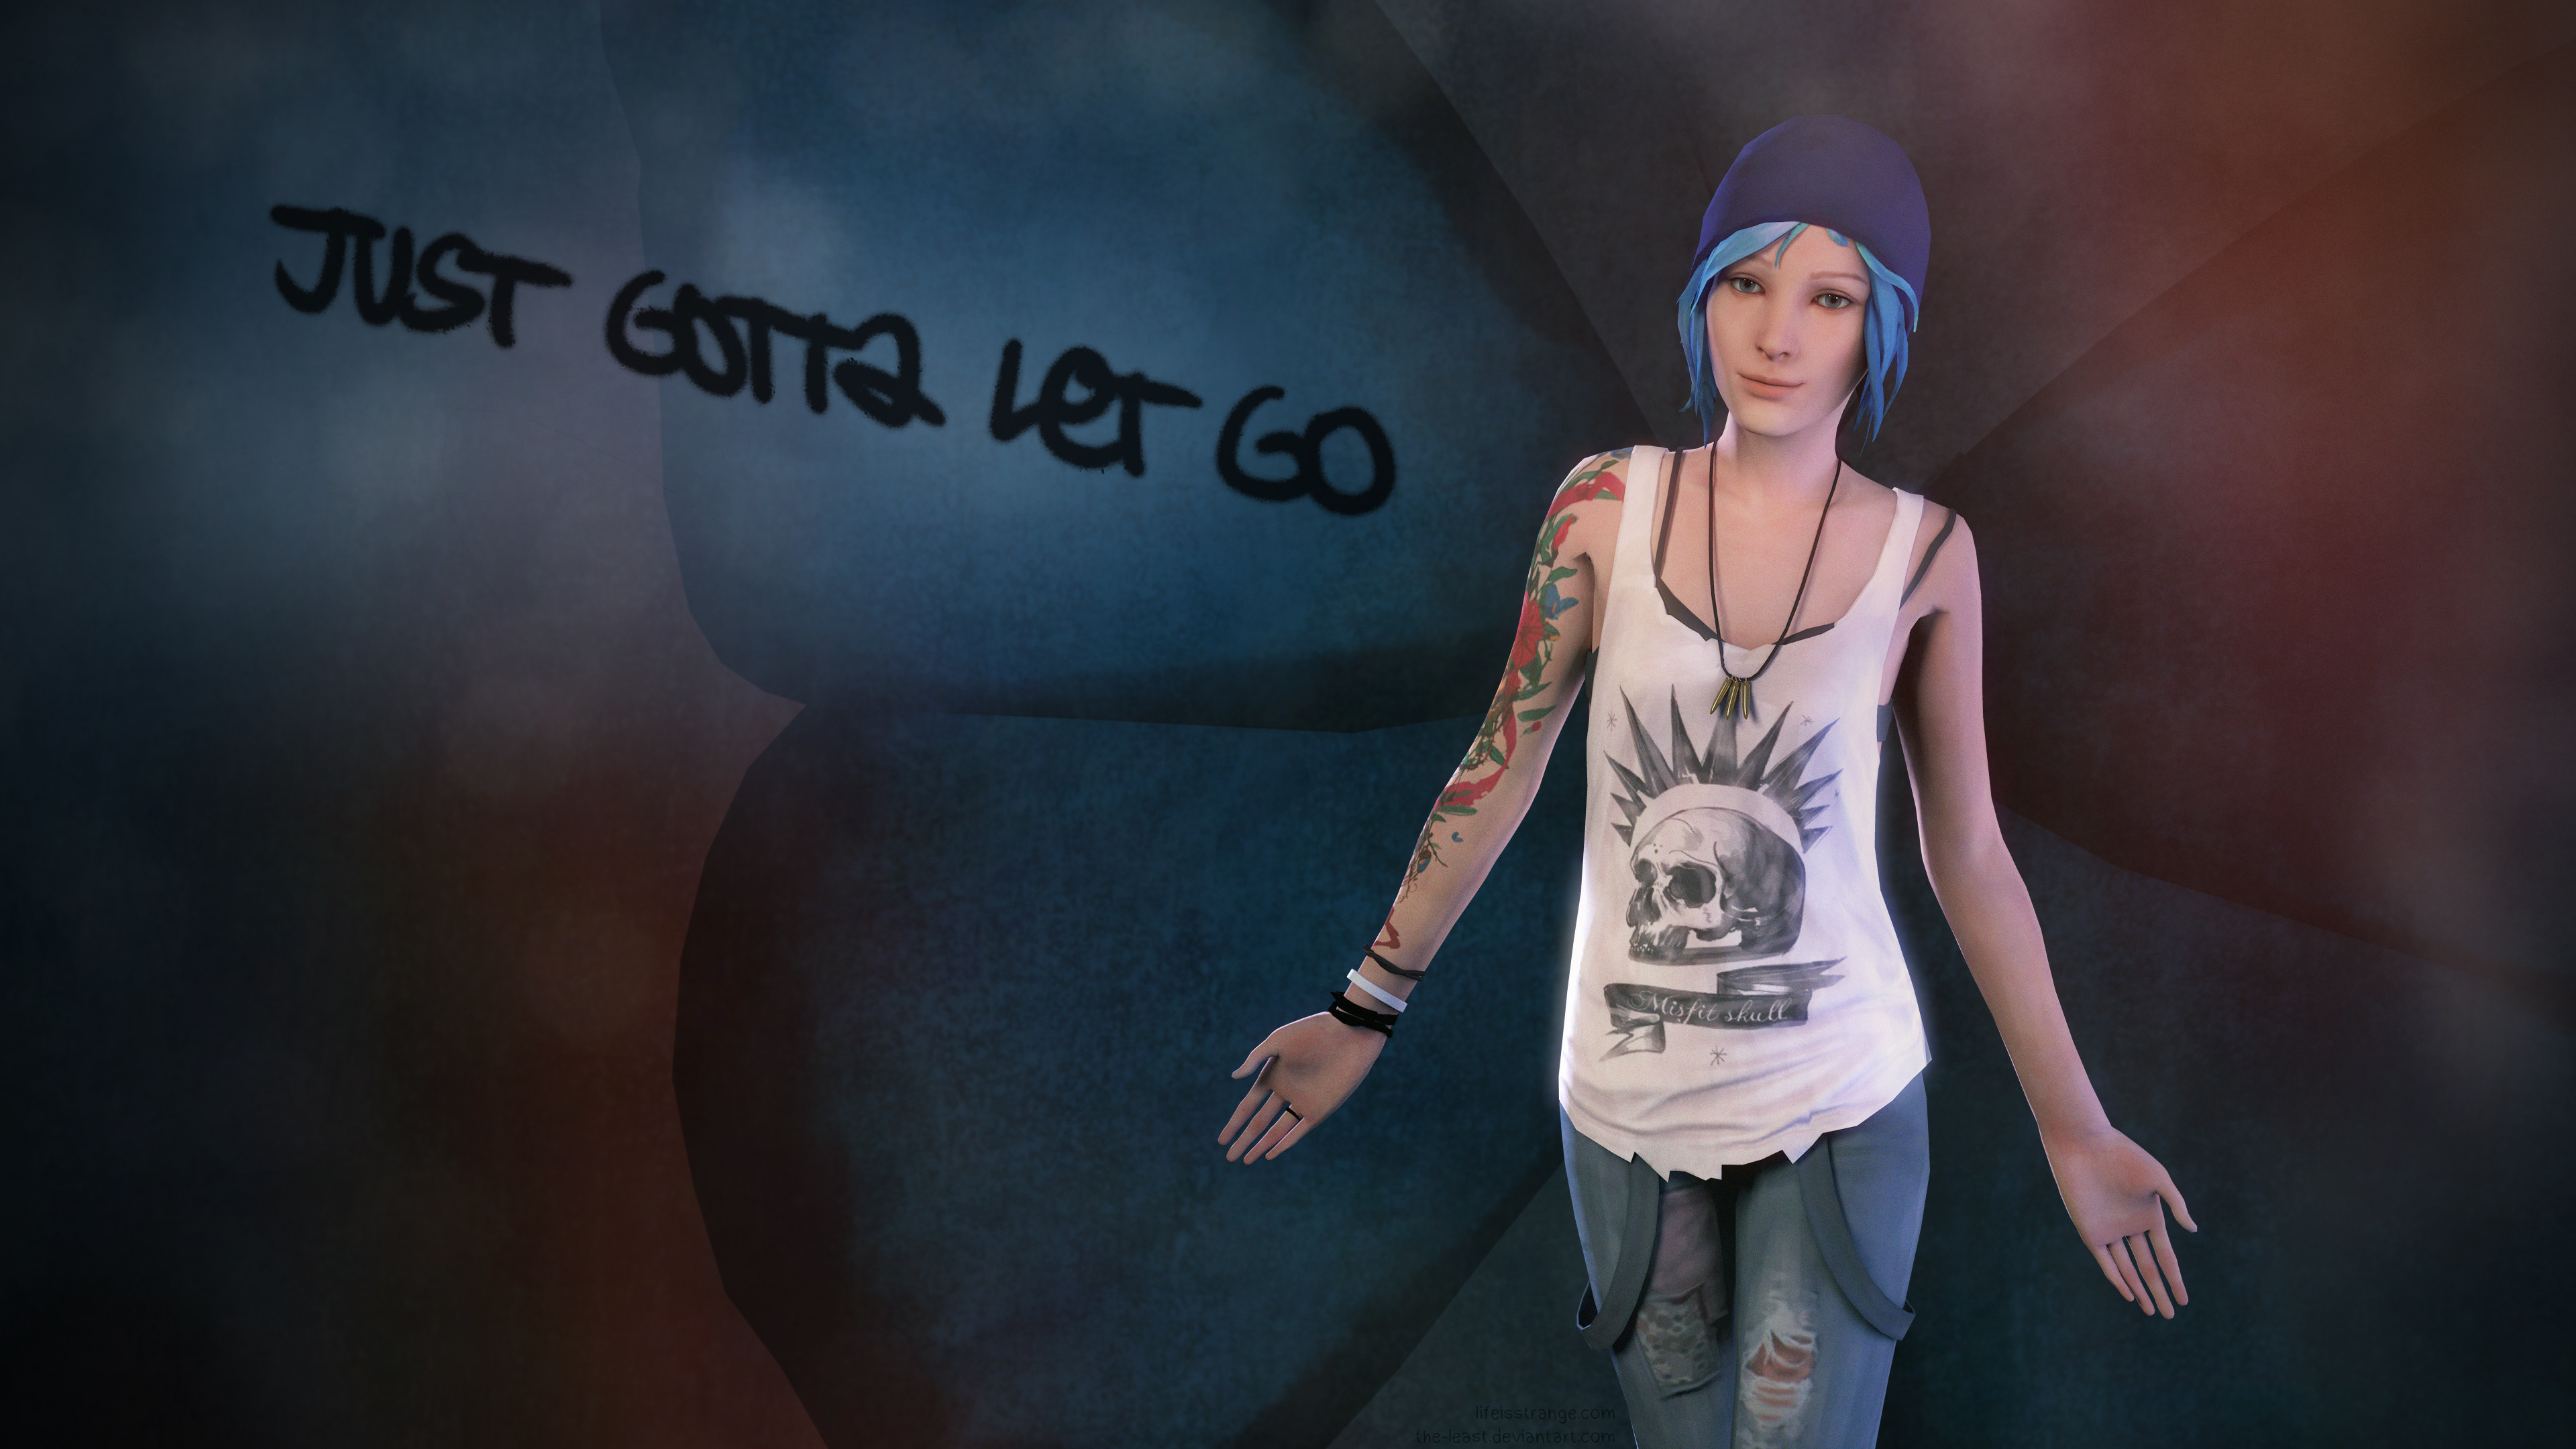 63681058a6f4 Chloe Price - Just Gotta Let Go by the-least